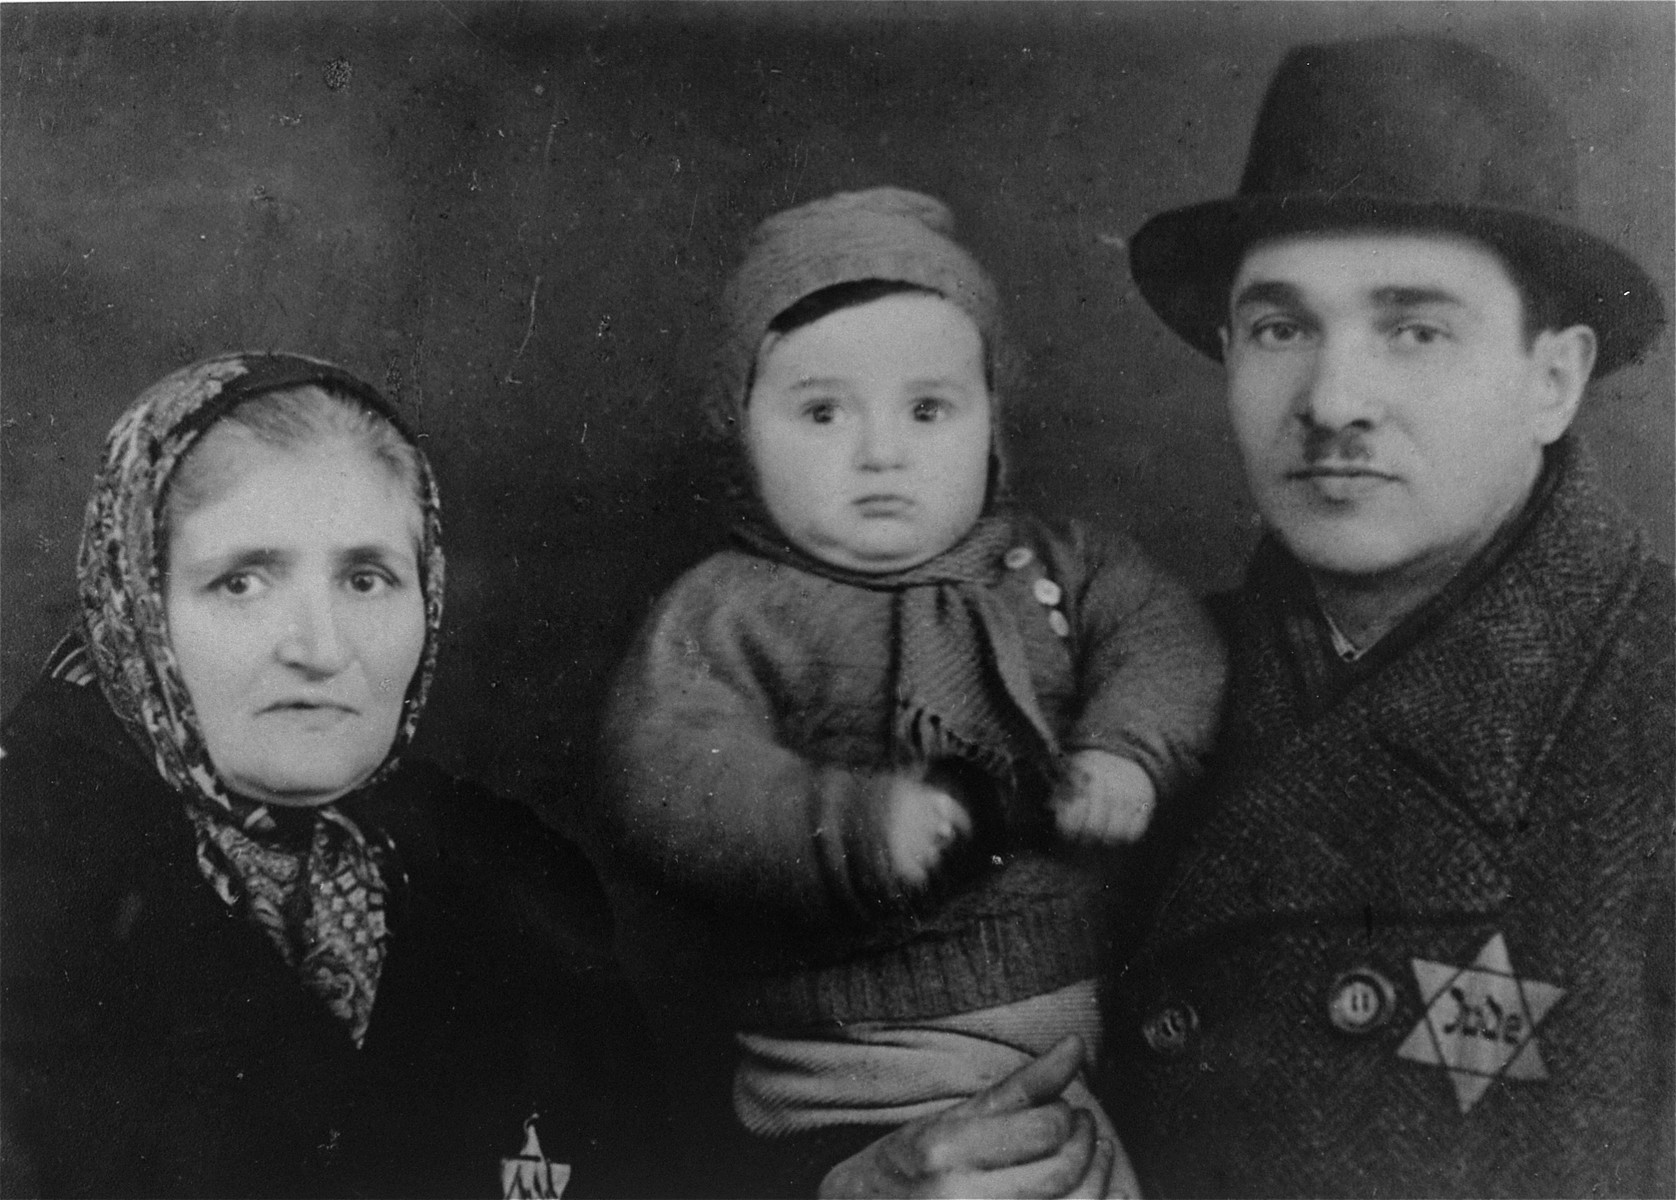 Studio portrait of a Jewish family in the Czeladz ghetto.  Pictured are three members of the Urman family.  All were murdered in Auschwitz in 1943.